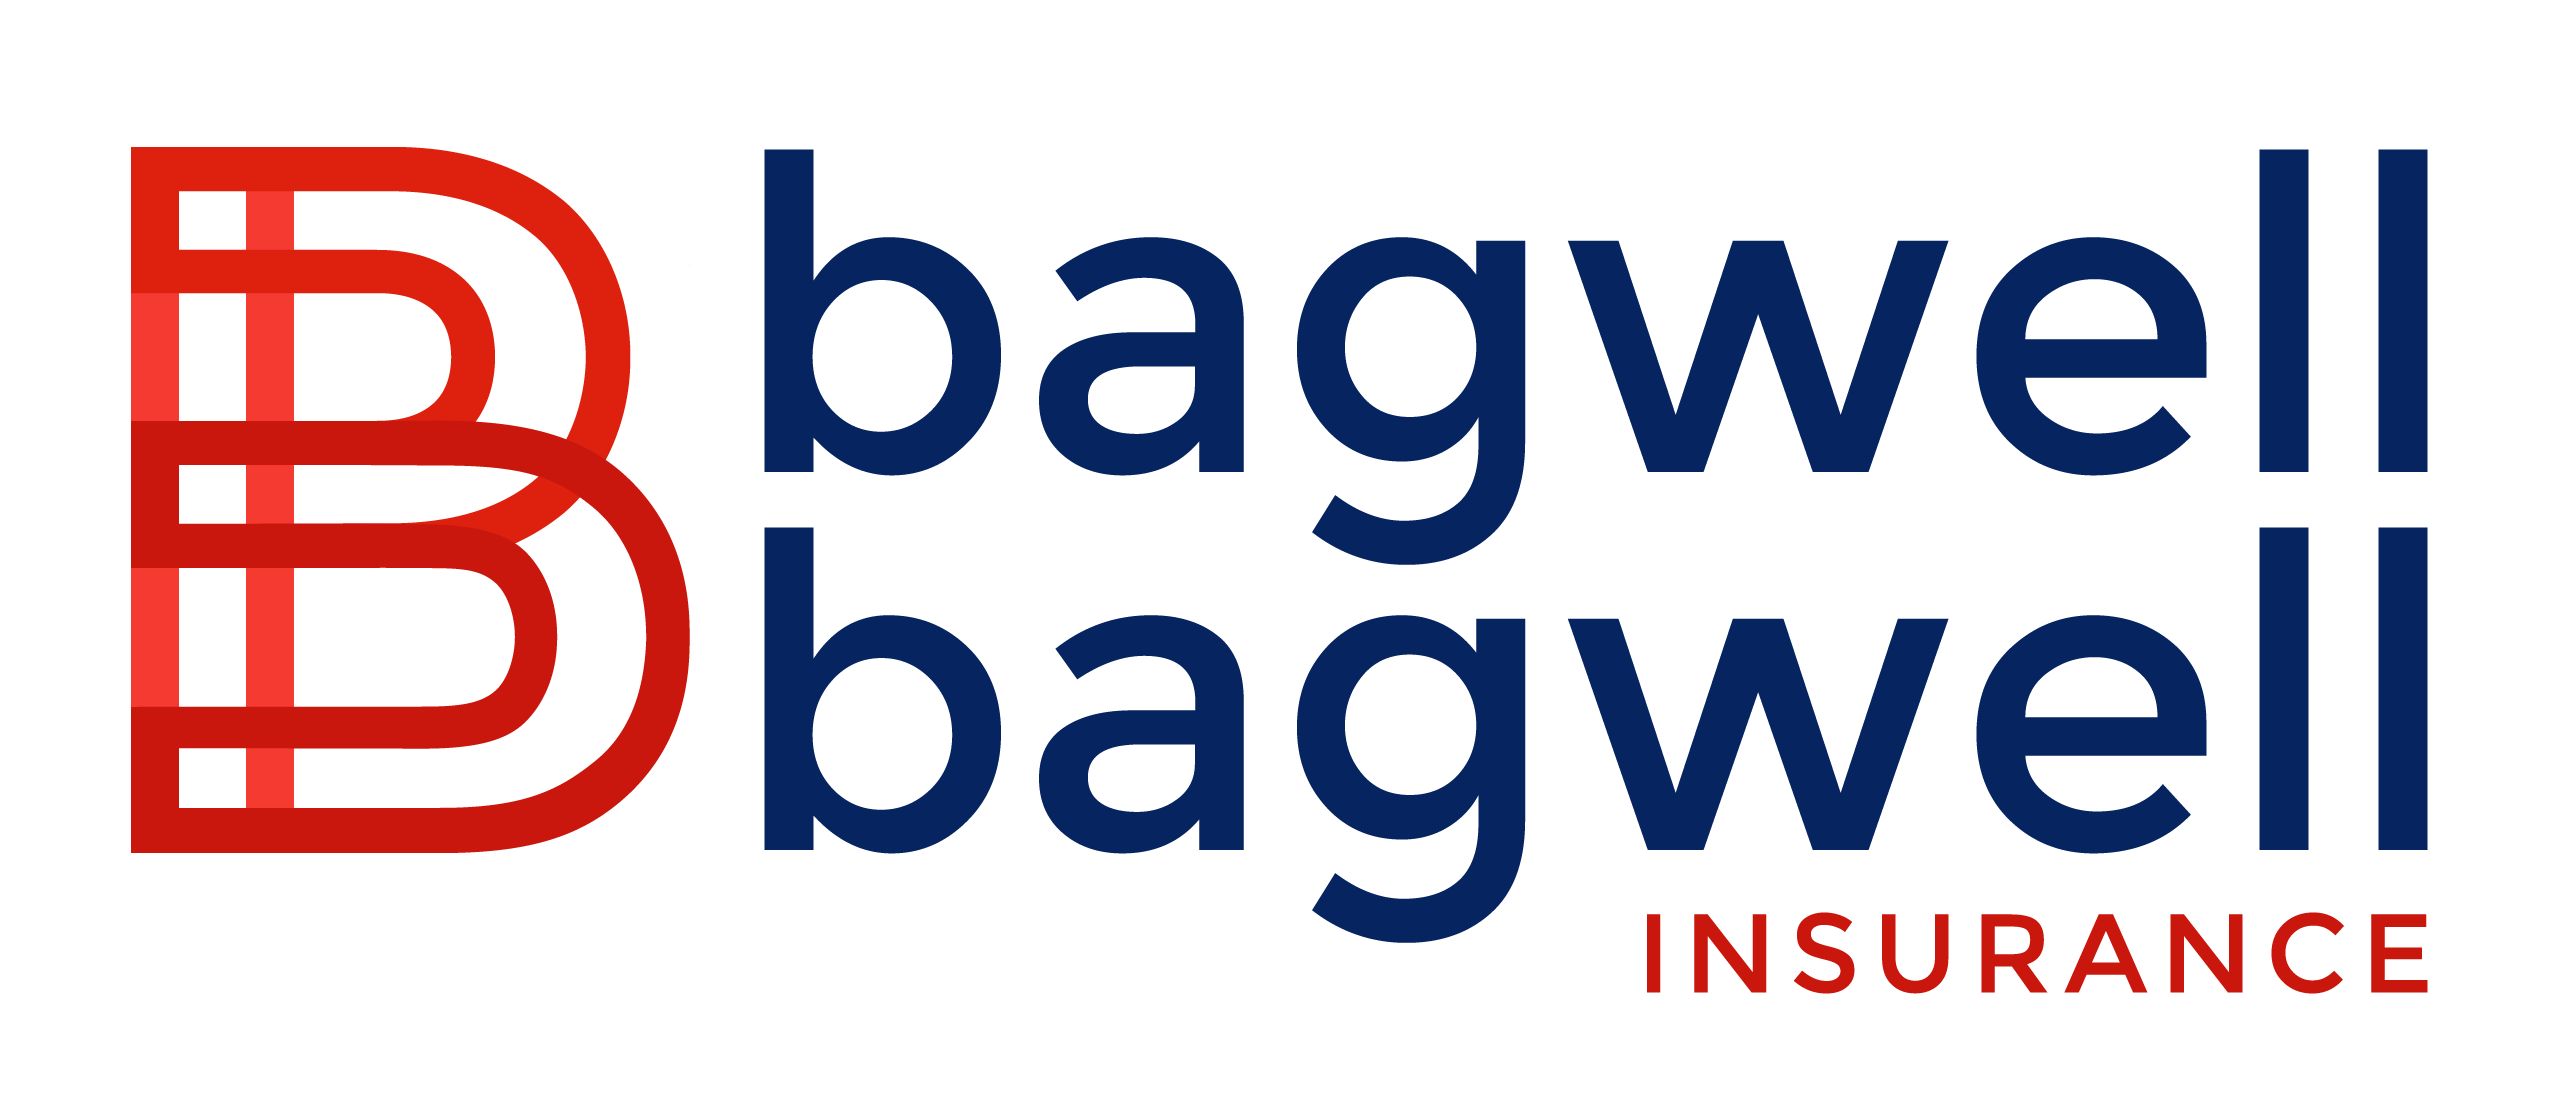 Bagwell & Bagwell Insurance LLC